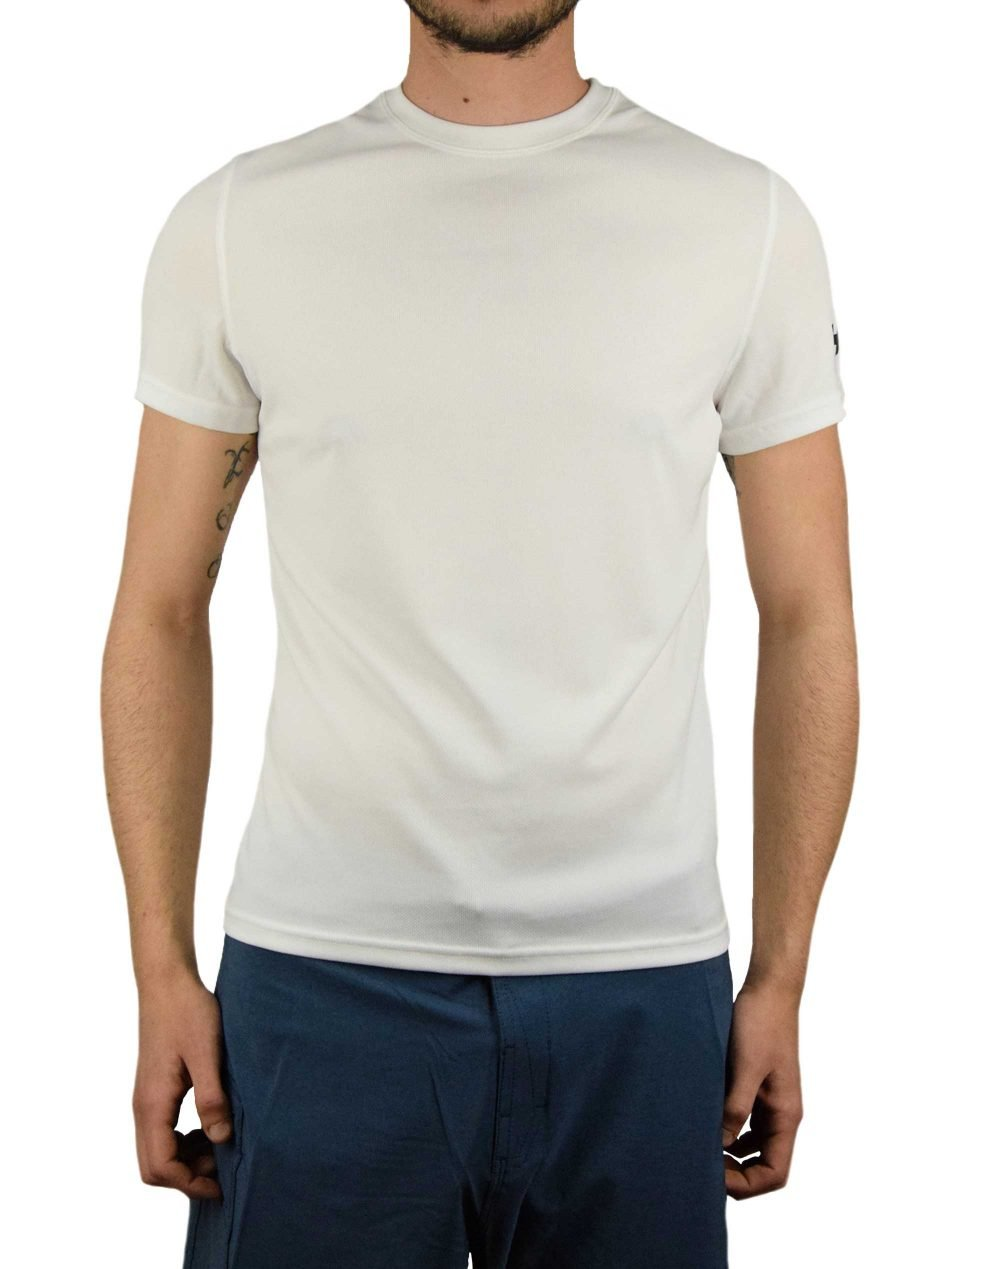 Helly Hansen Tech T-Shirt (48363-001) White